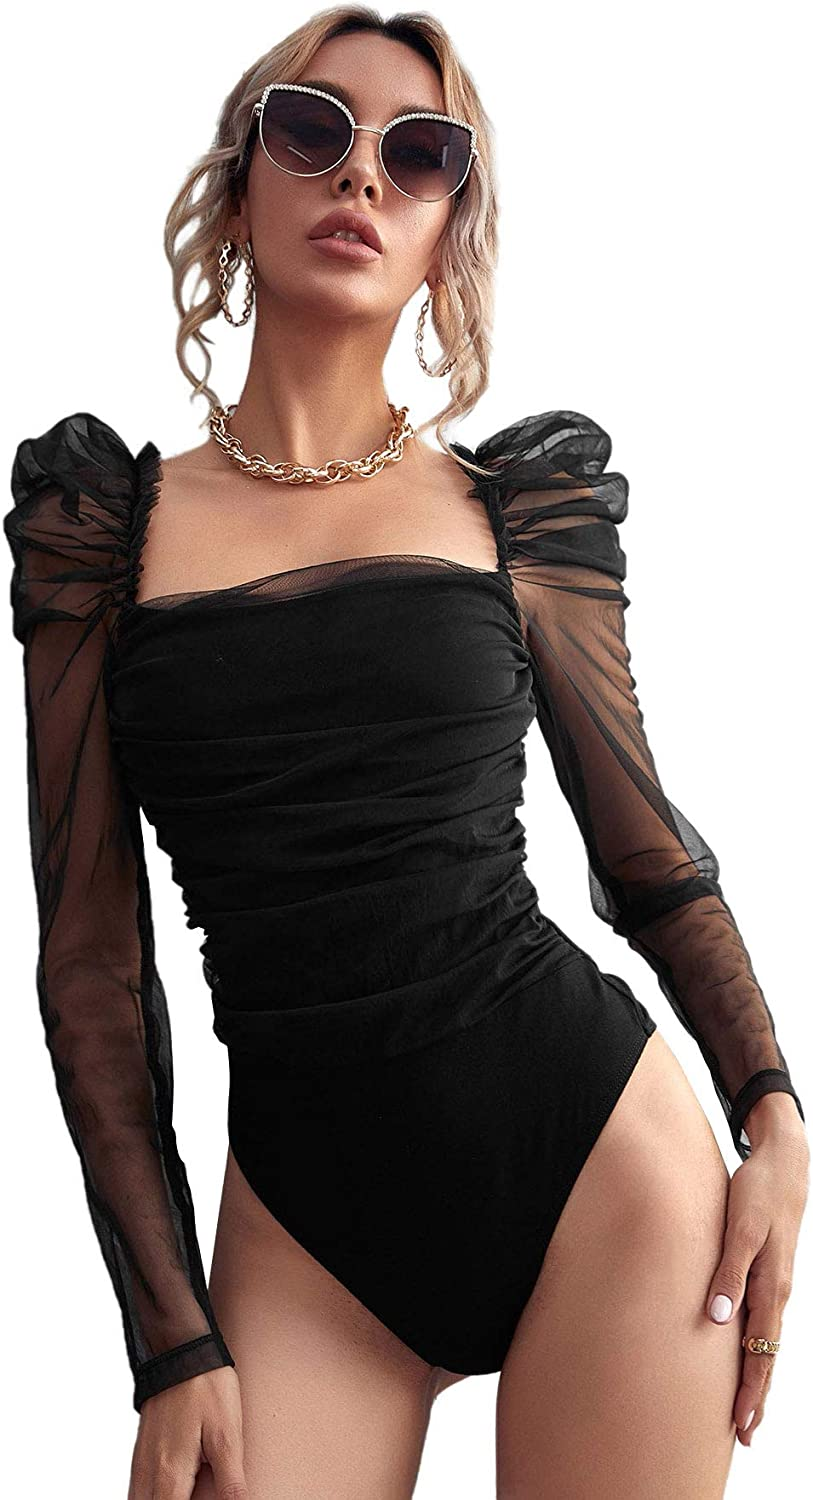 Romwe Women's Square Neck Sheer Mesh Leg-of-mutton Long Sleeve Ruched Party Bodysuit